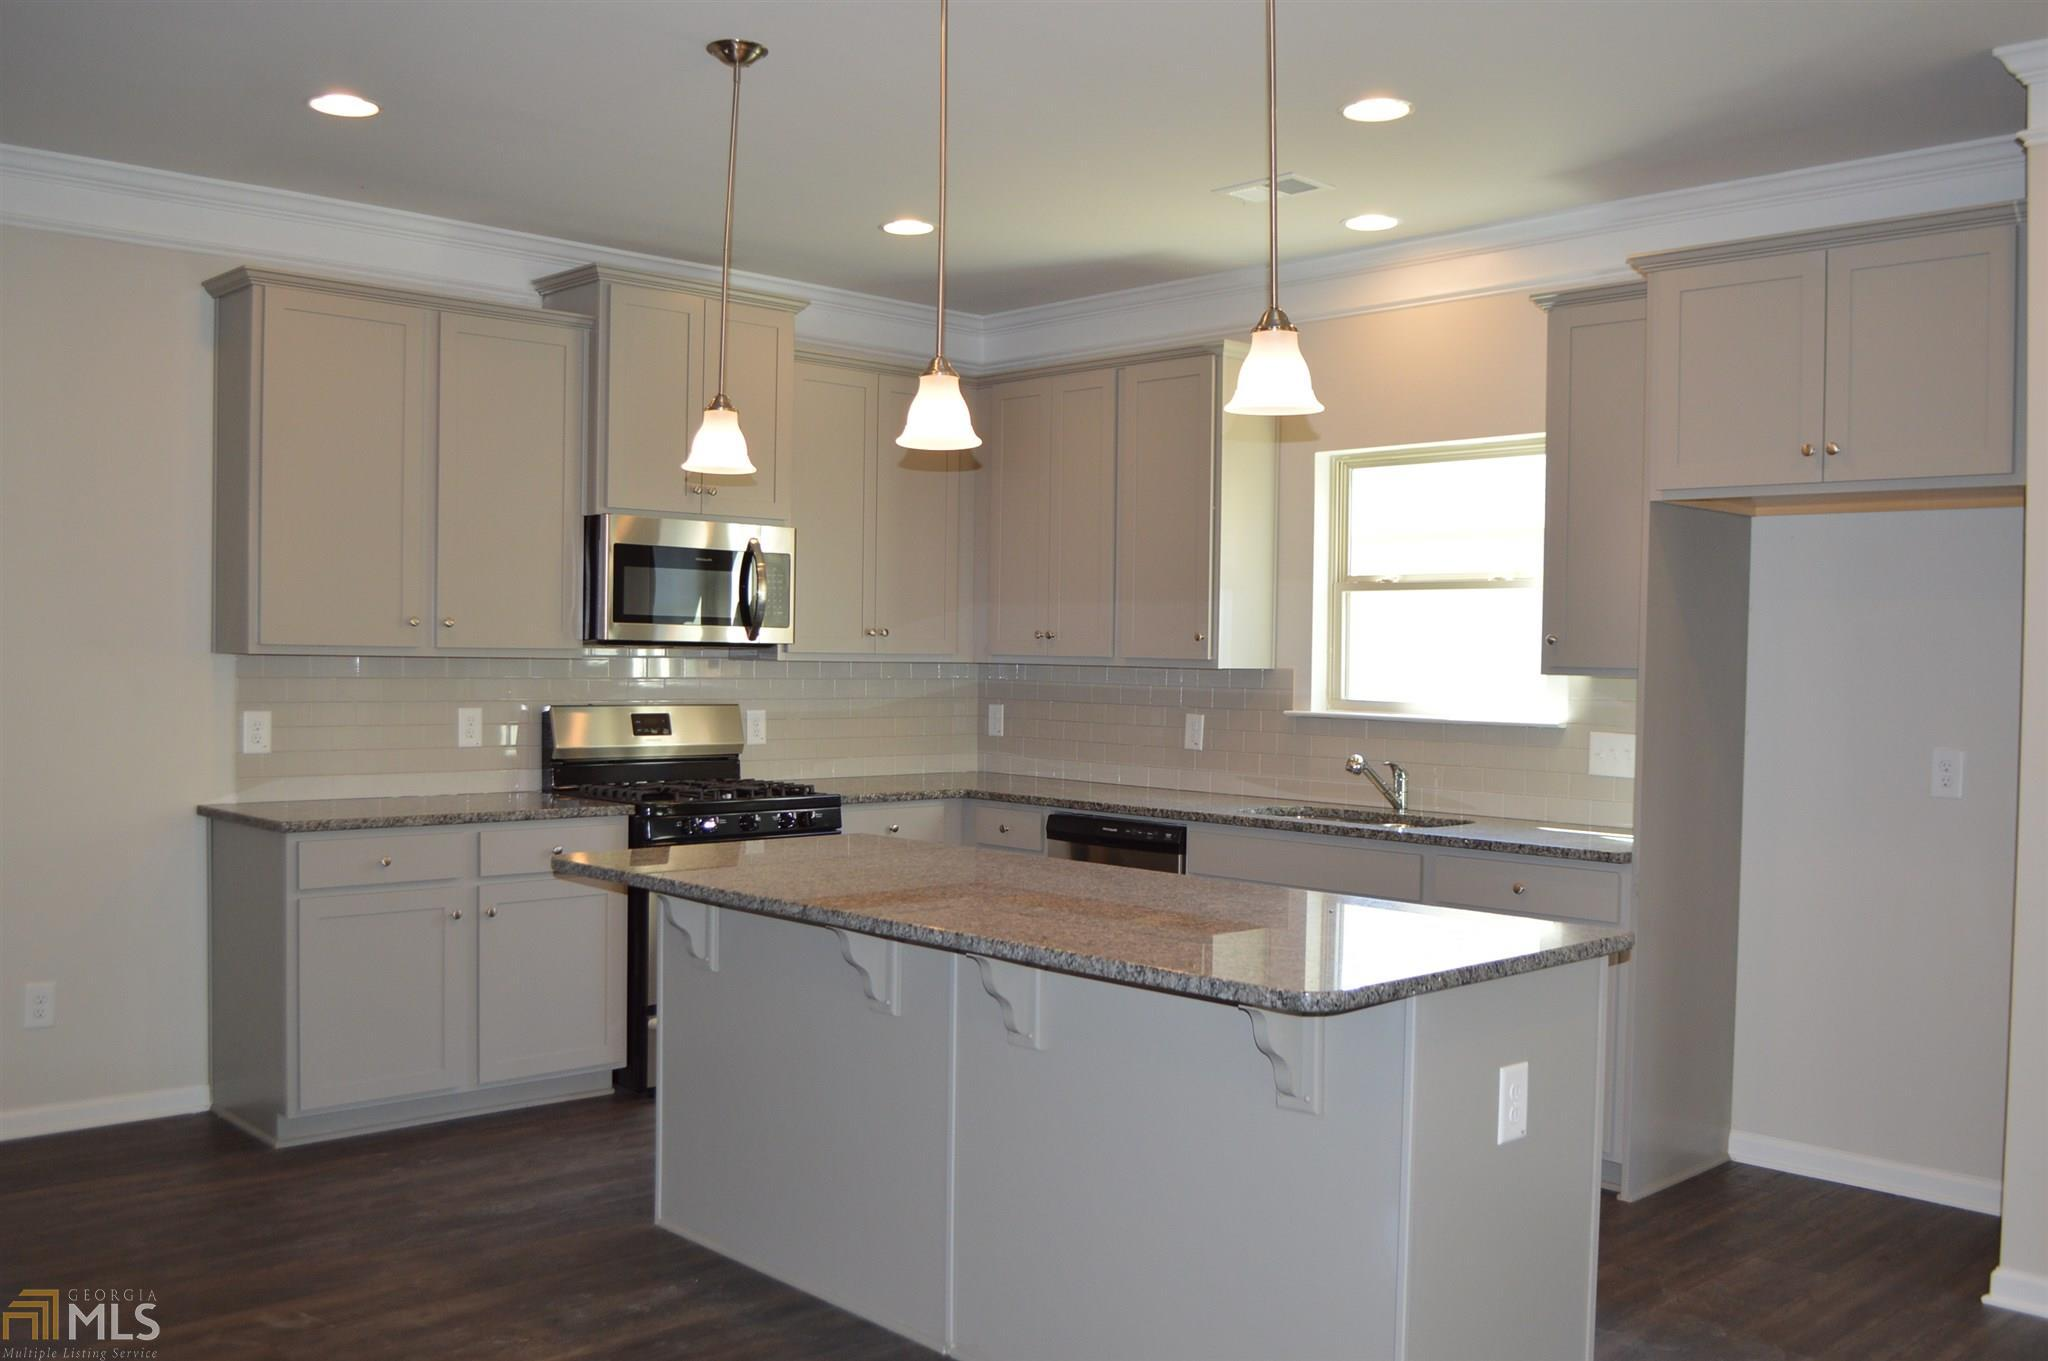 Kitchen-in-The Bayfield-at-Woodbury Estates at Newnan Crossing-in-Newnan